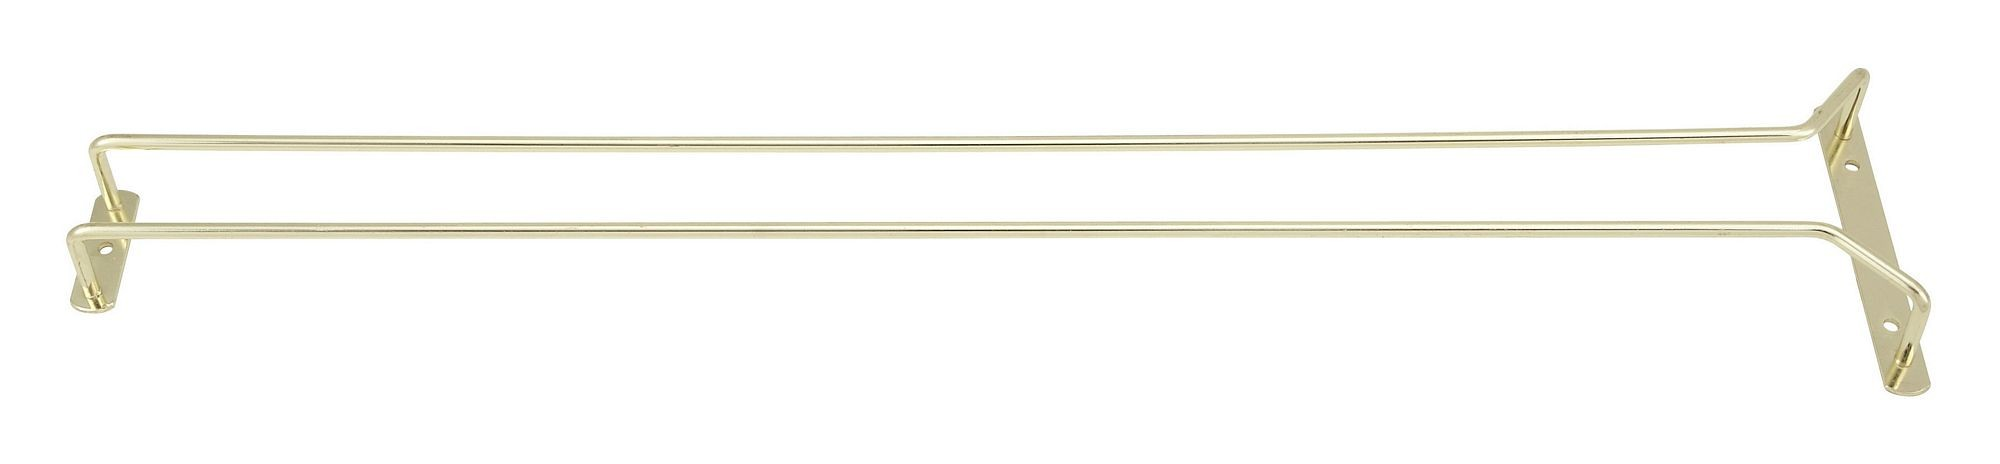 Winco GH-24 Brass Plated Wire Glass Hanger Rack 24""